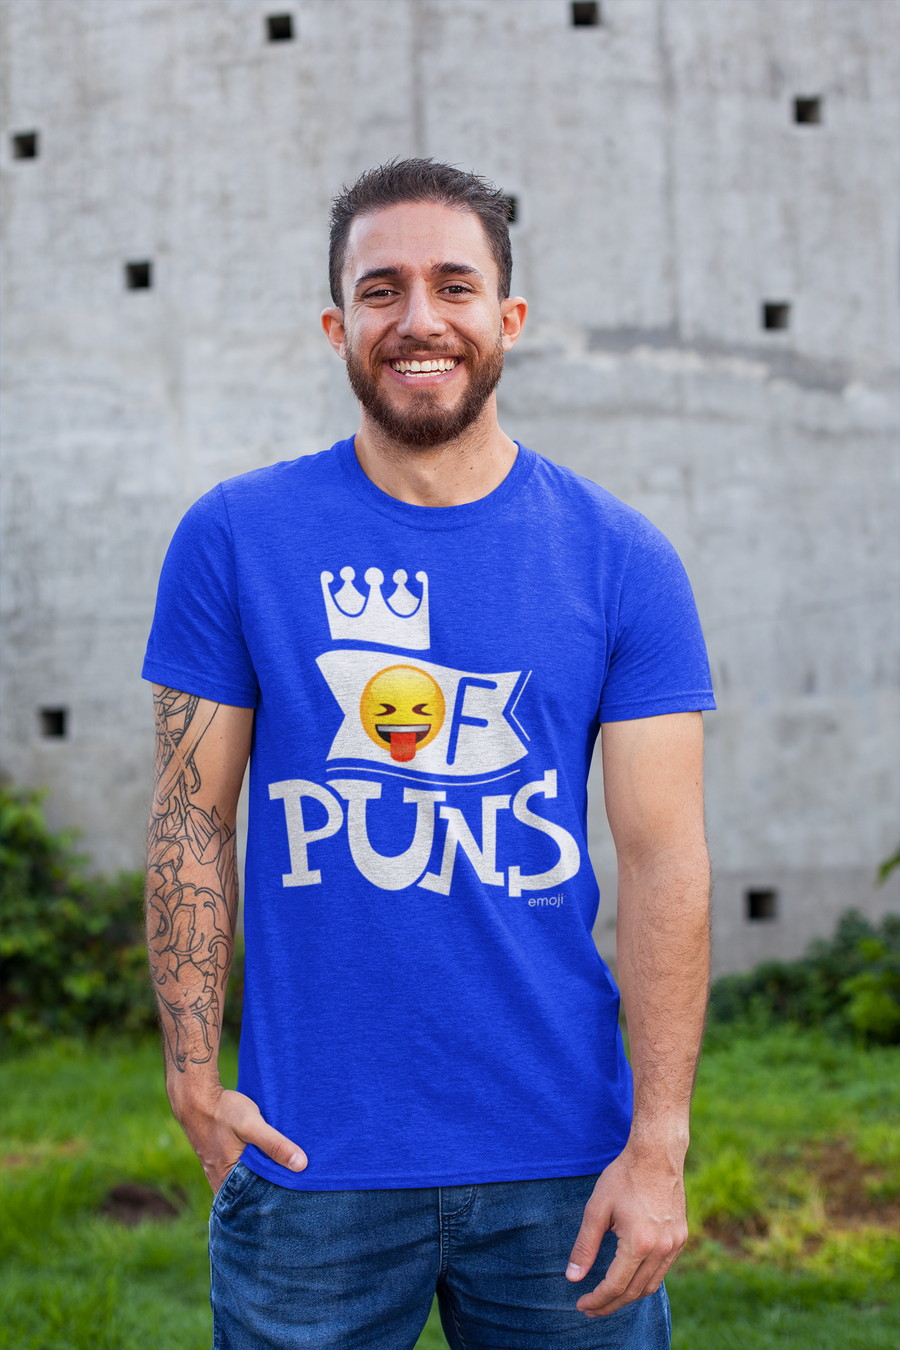 Official Licensed emoji Printed T-Shirt for Men - King Of Puns